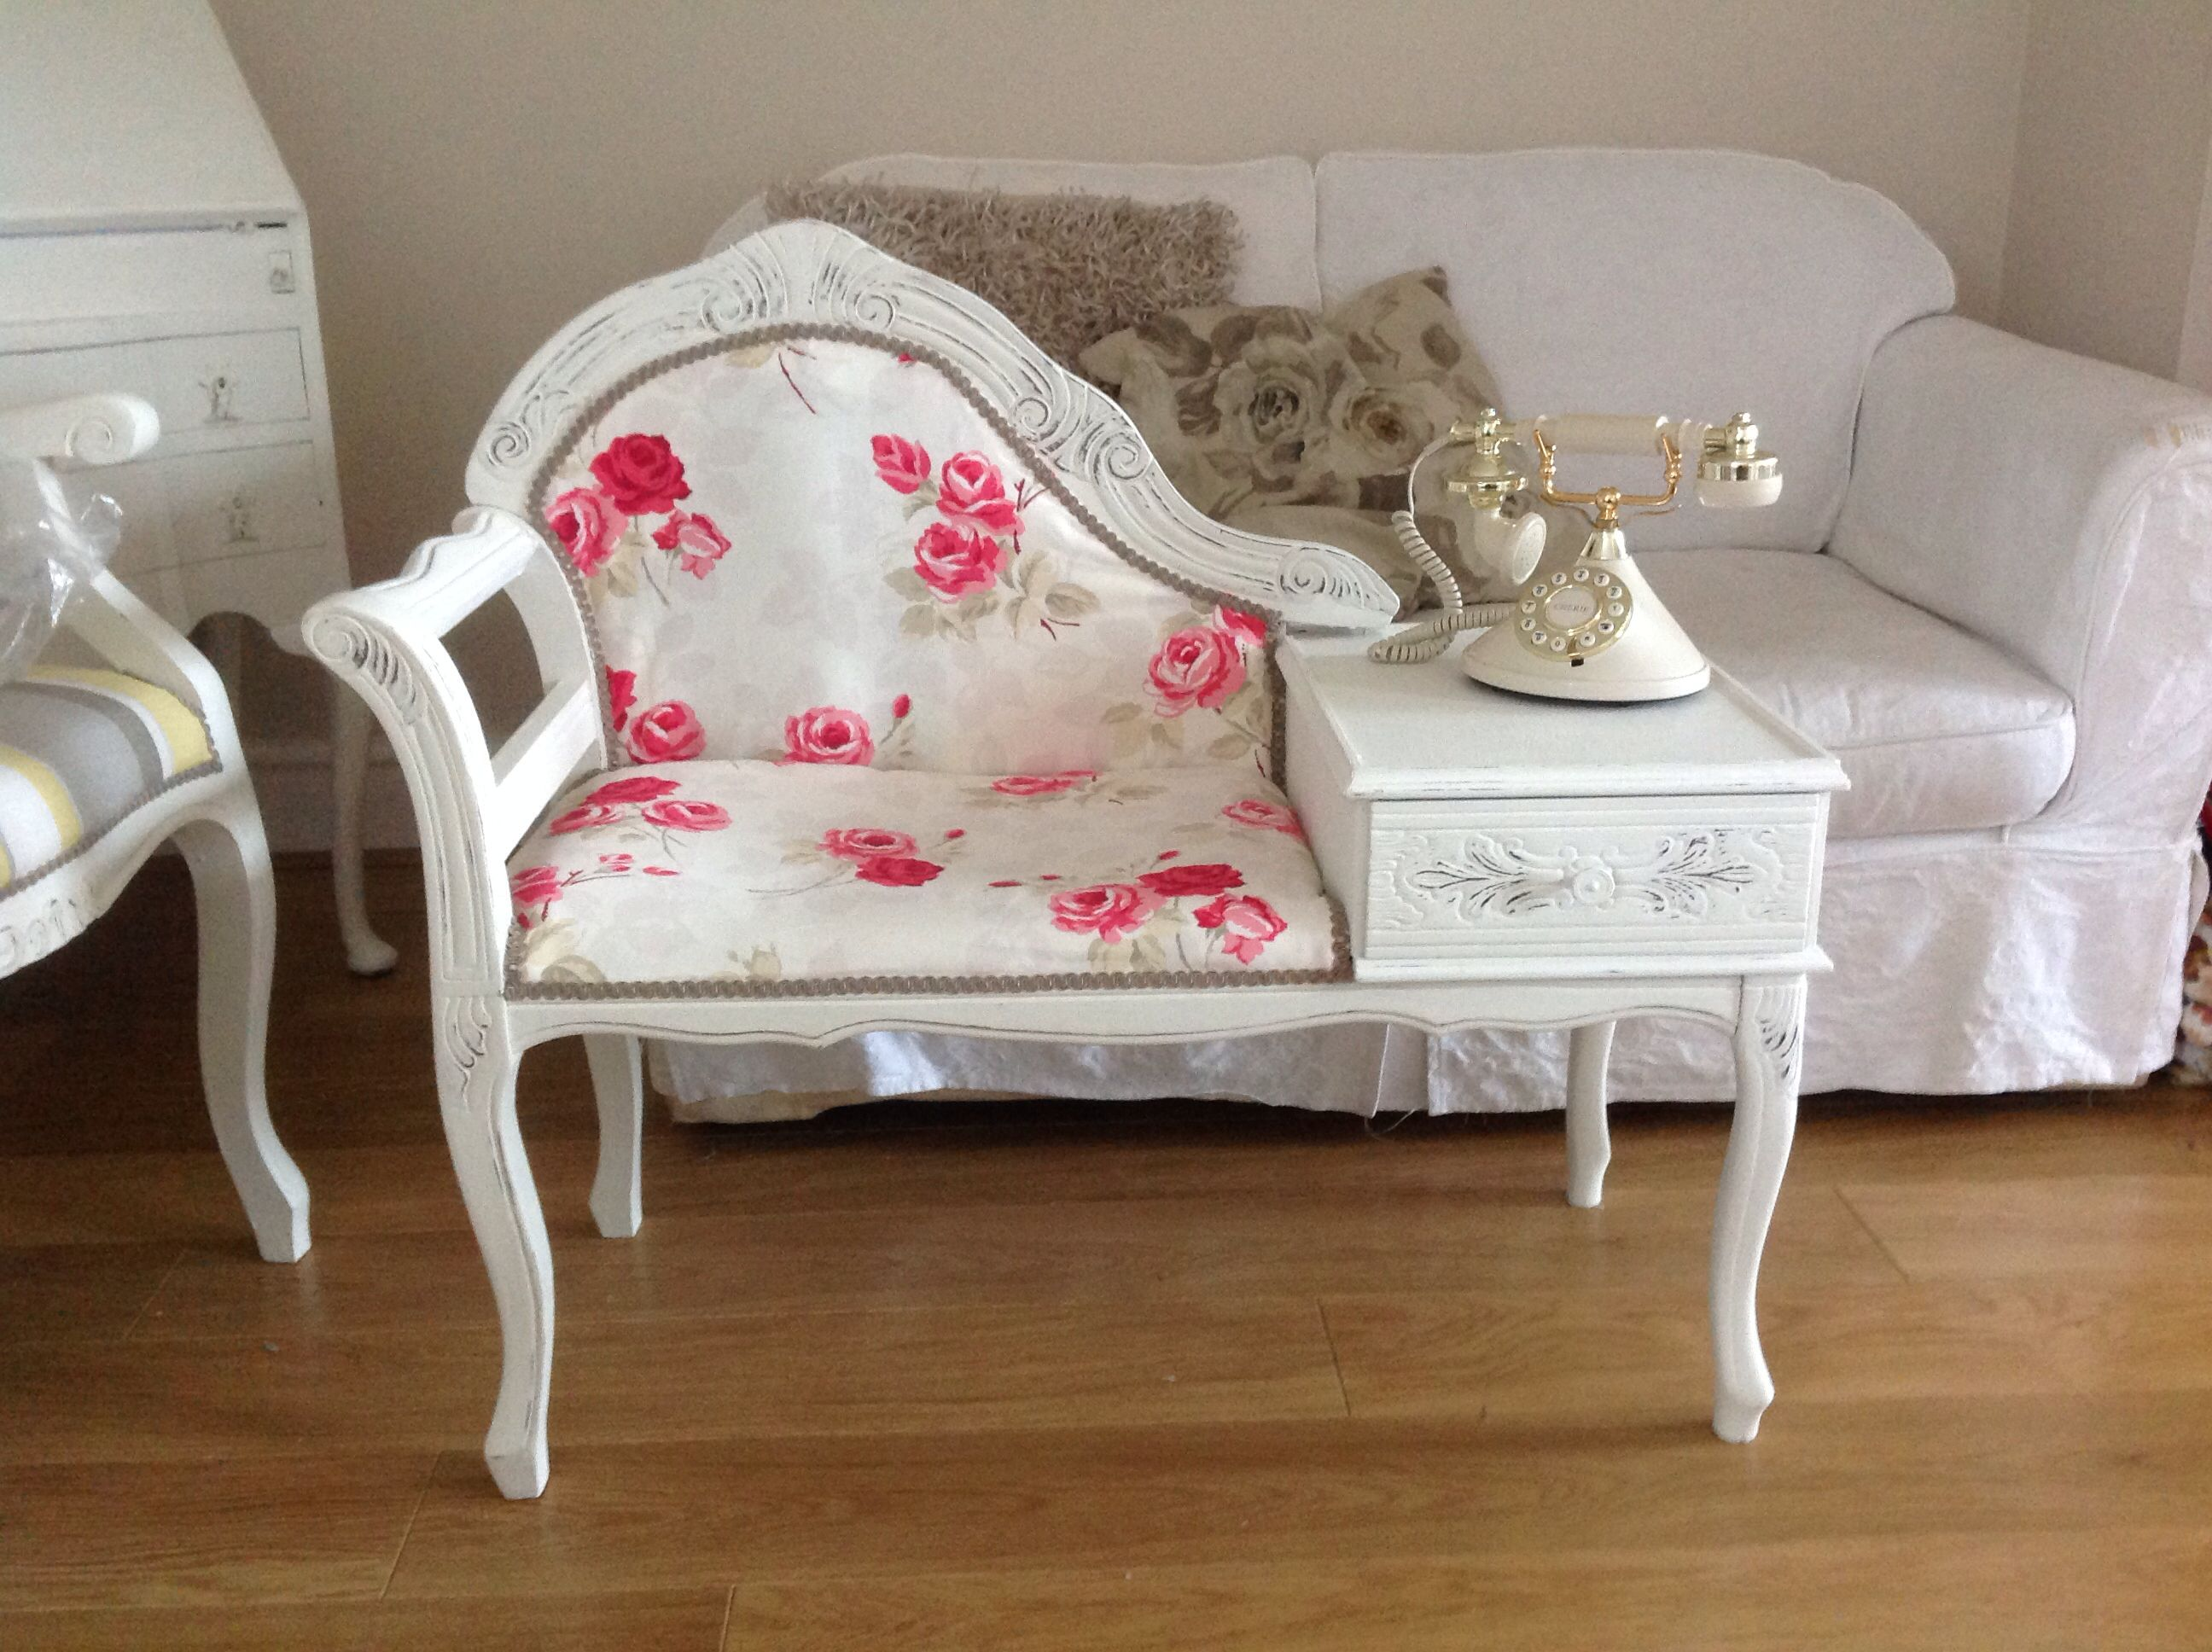 Telephone table painted shabby chic french style but with for Toile shabby chic